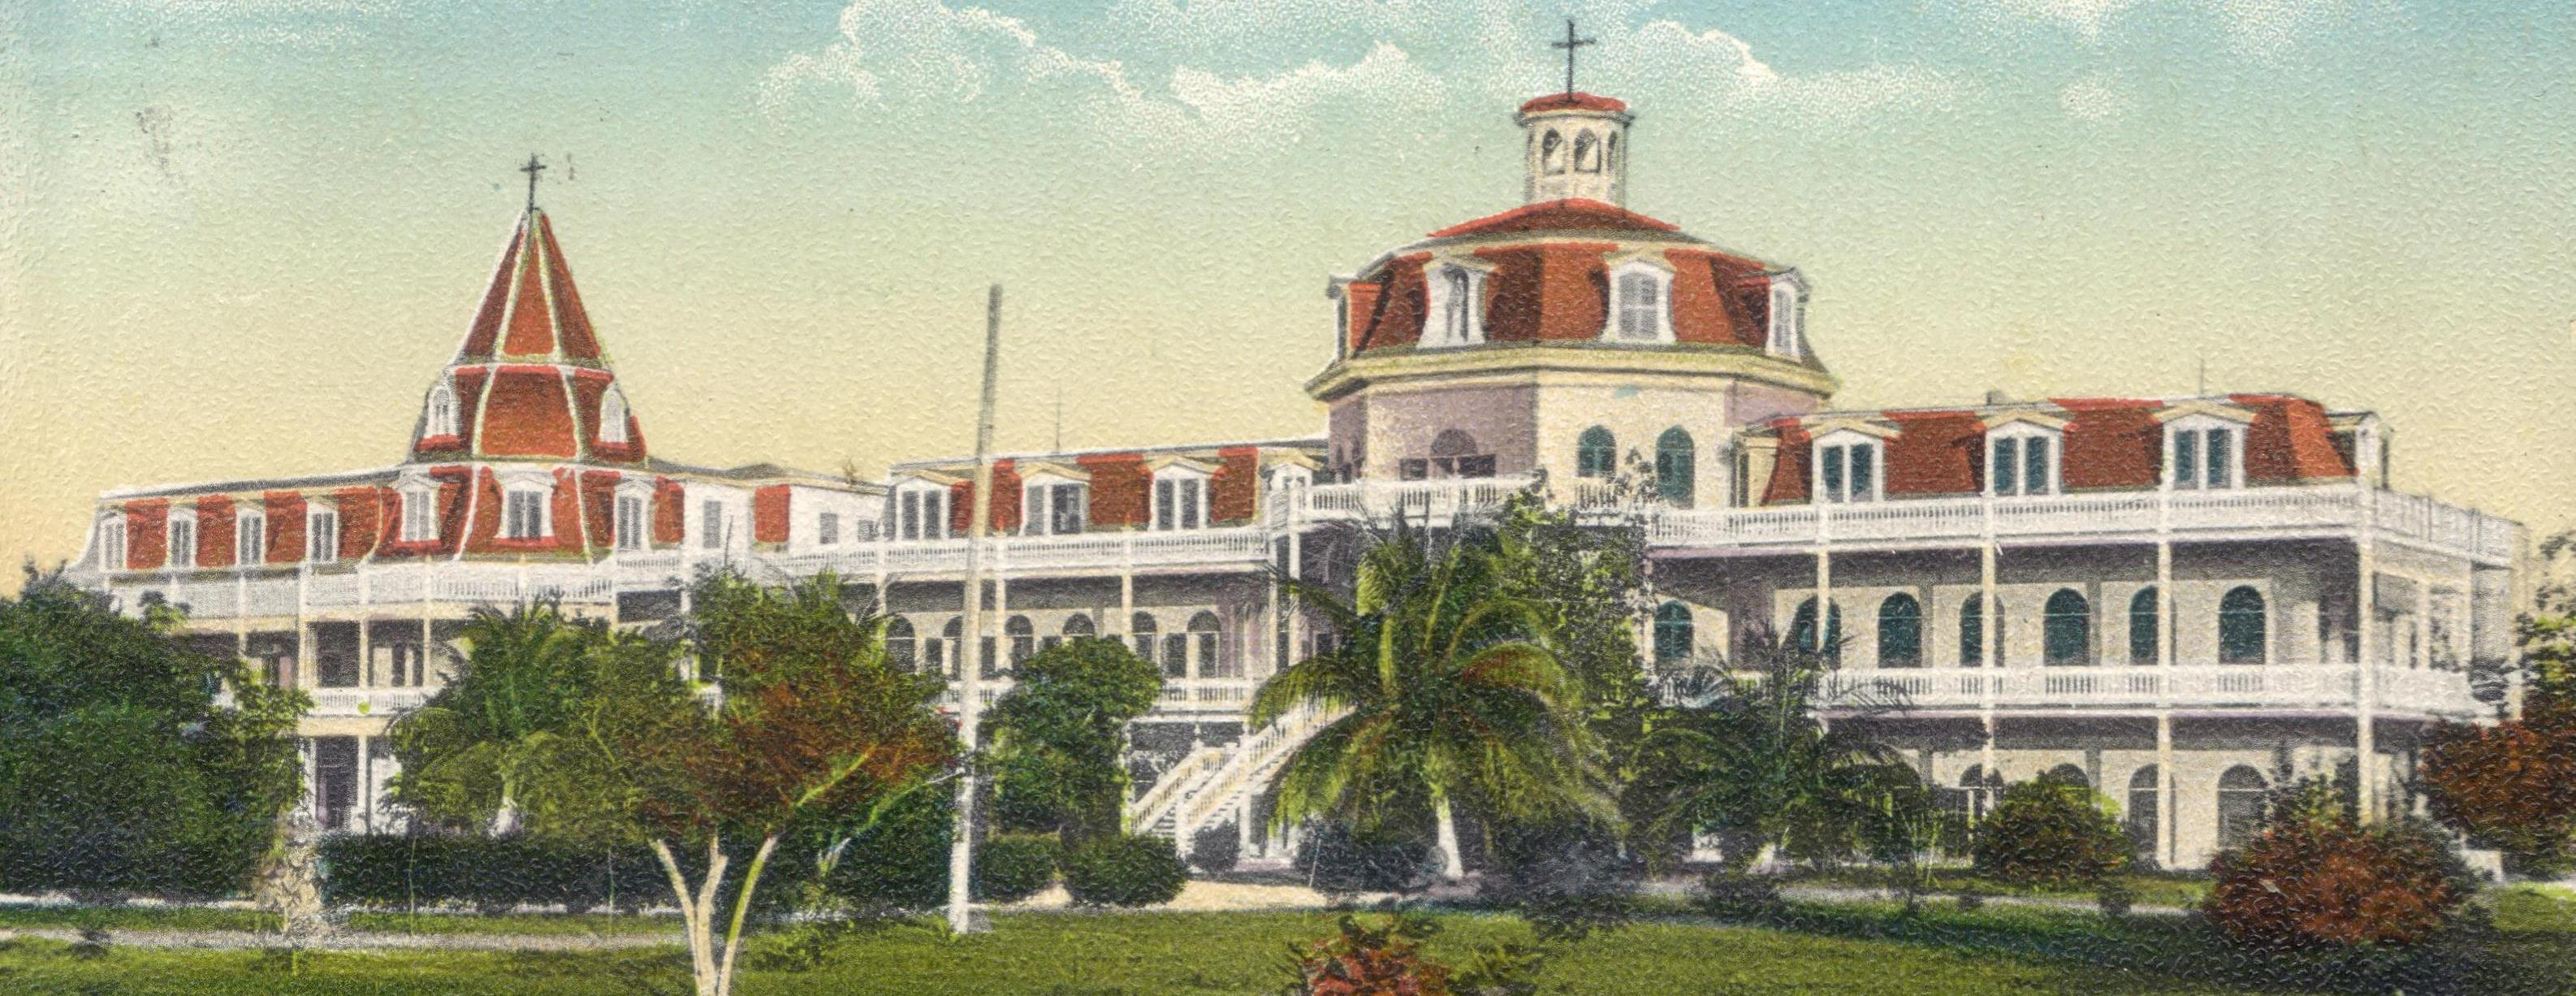 150th anniversary of the arrival of SNJM Sisters in Key West, Florida